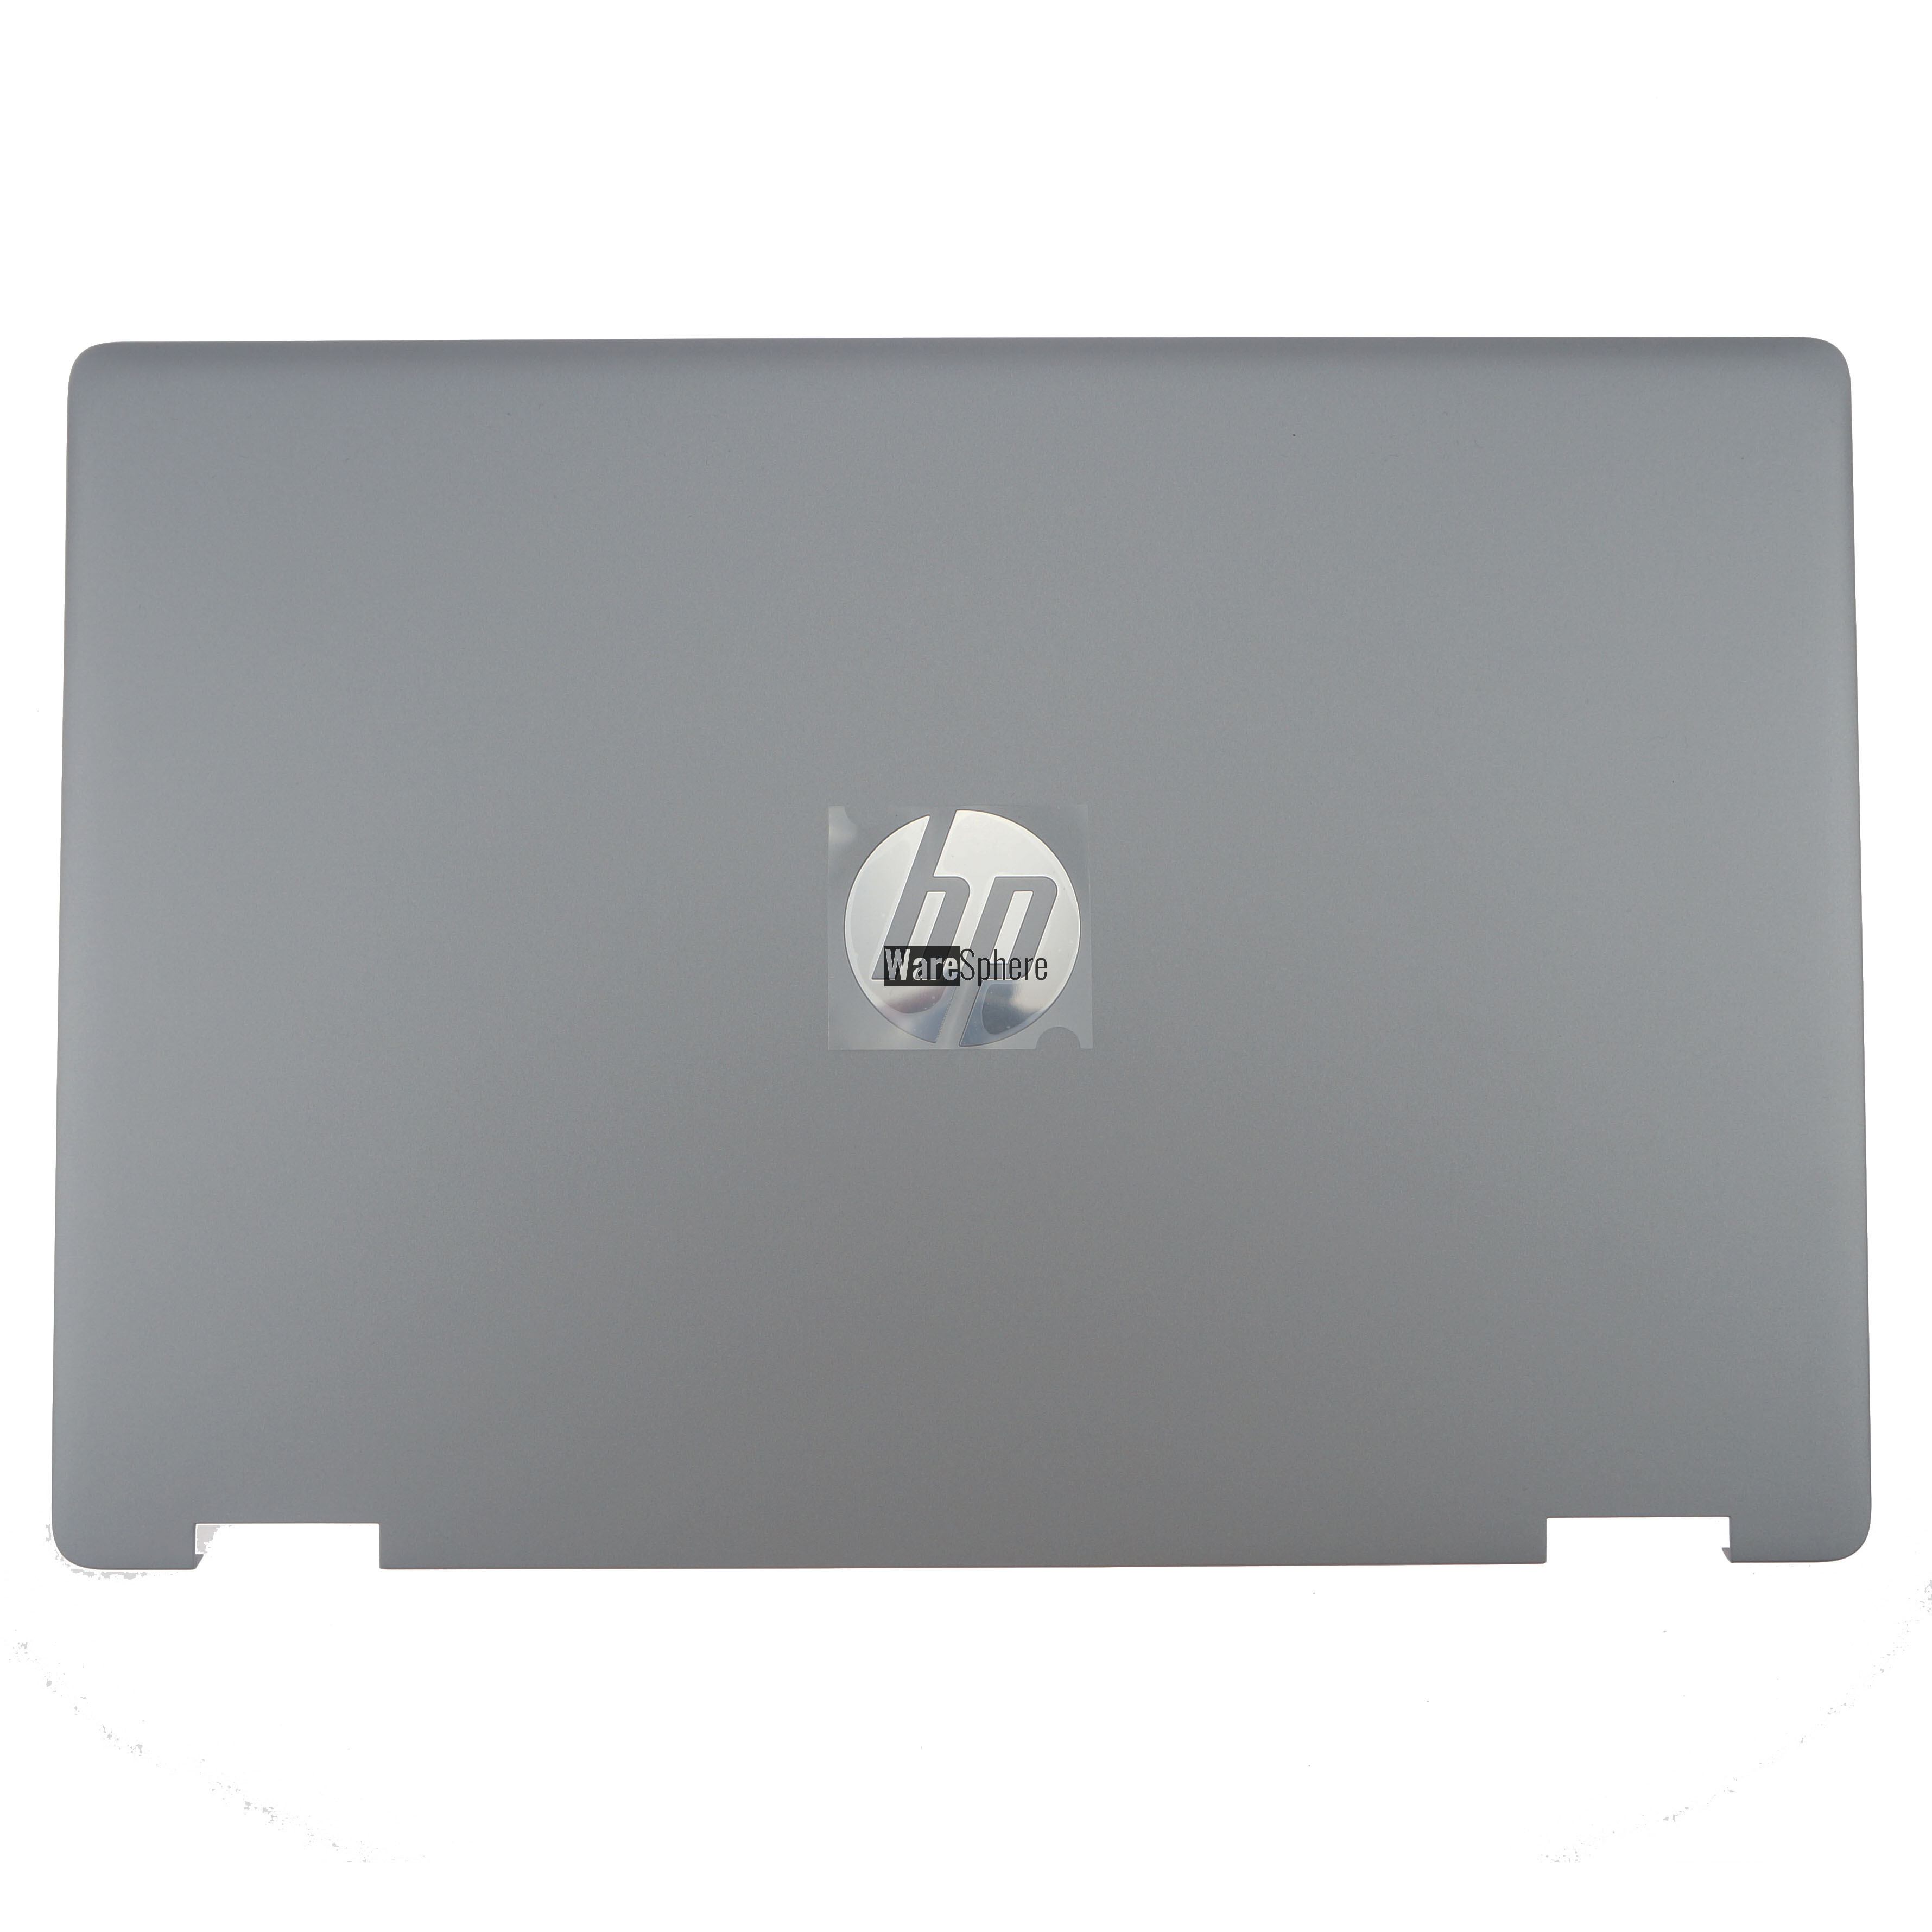 LCD Back Cover for Hp X360 14-DH L52879-001 4600GG0H0002 Grey